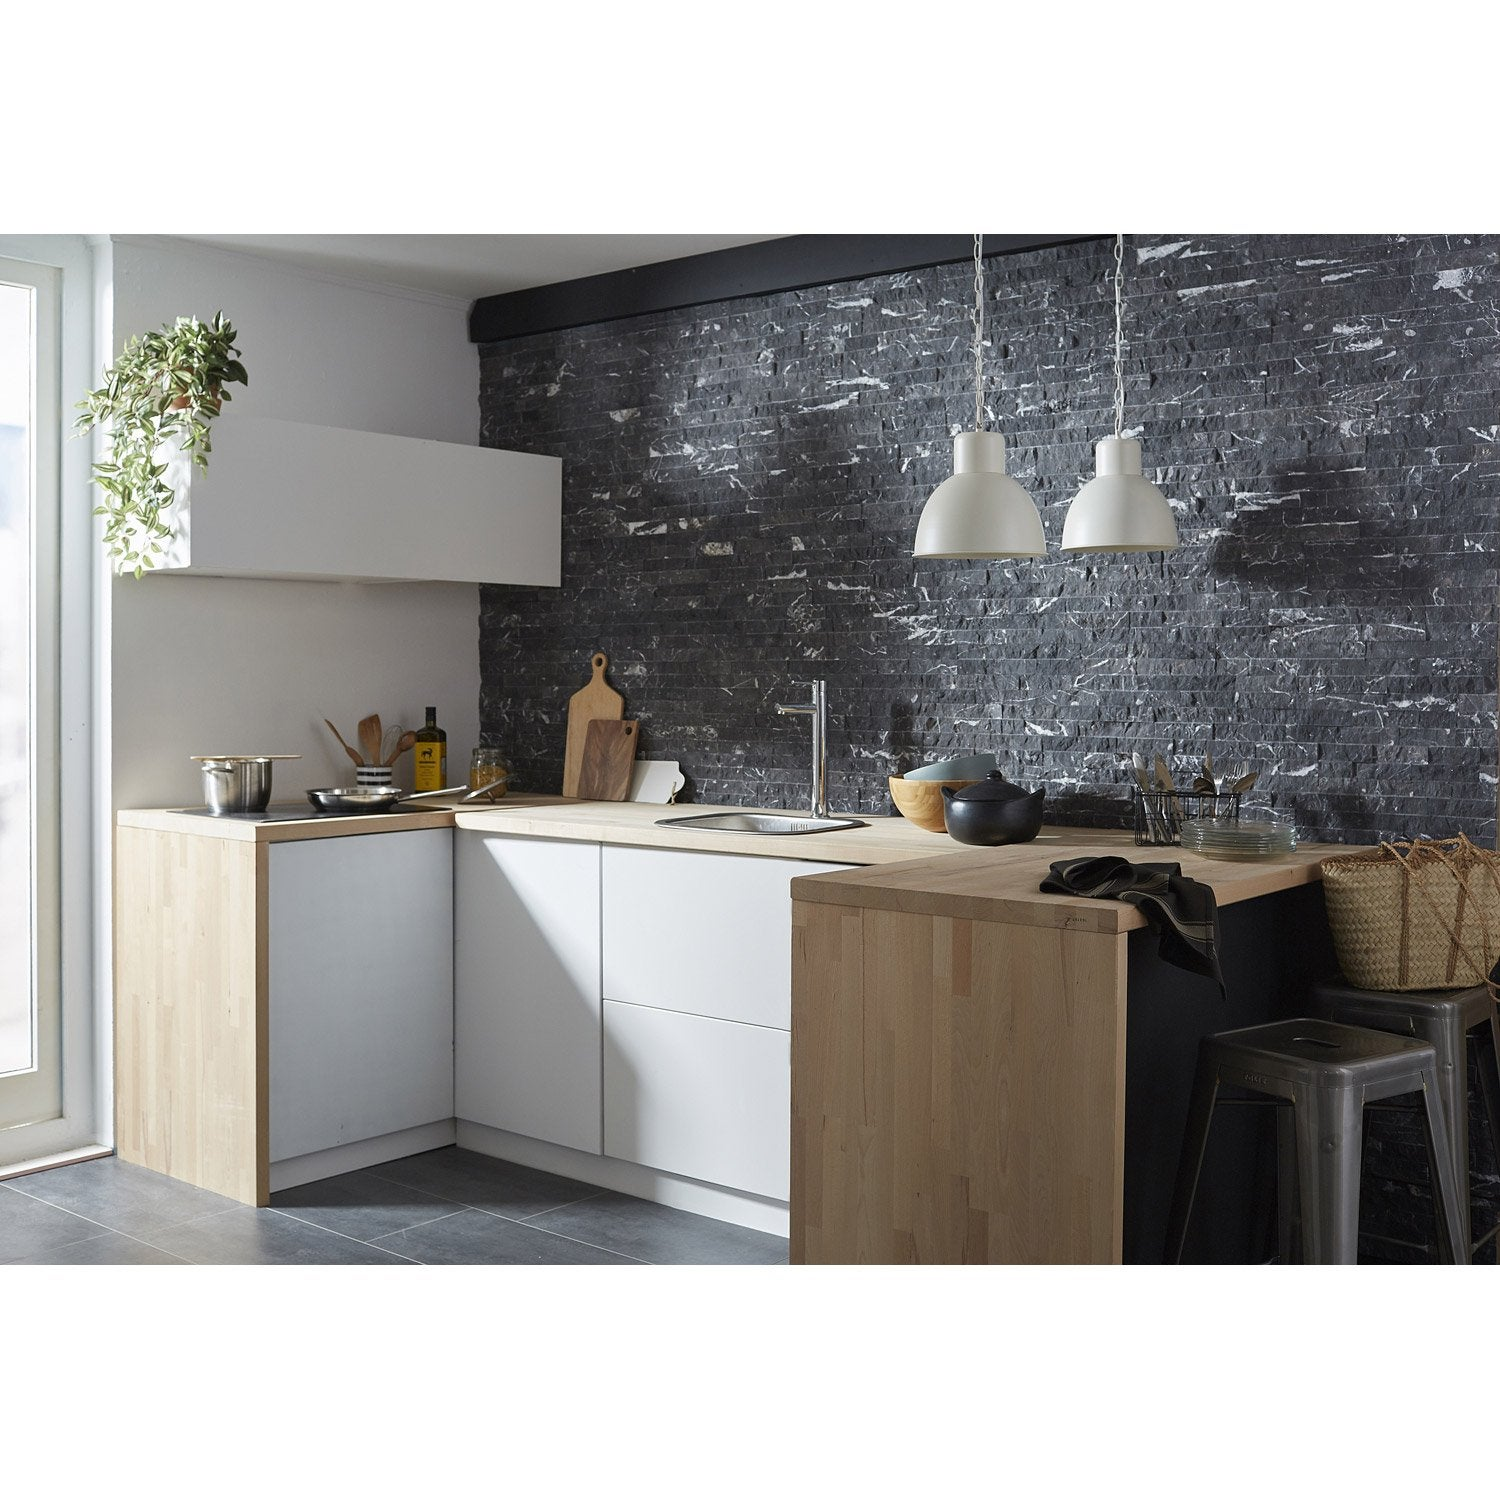 Plaquette de parement pierre naturelle anthracite cottage - Parement pierre naturelle interieur ...